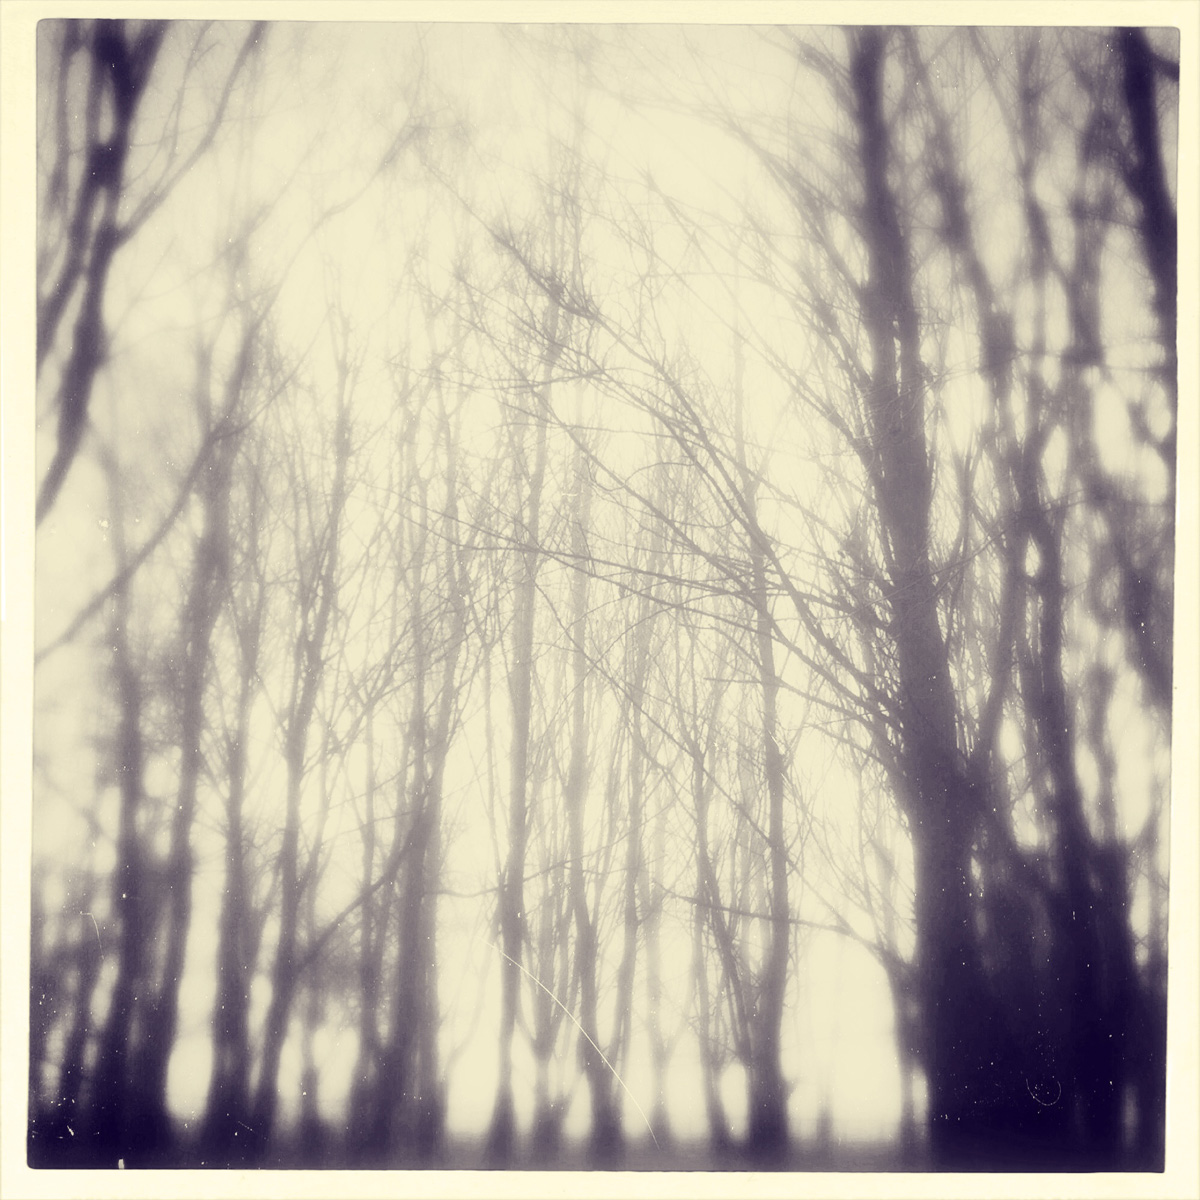 iphoneography - foggy trees 2